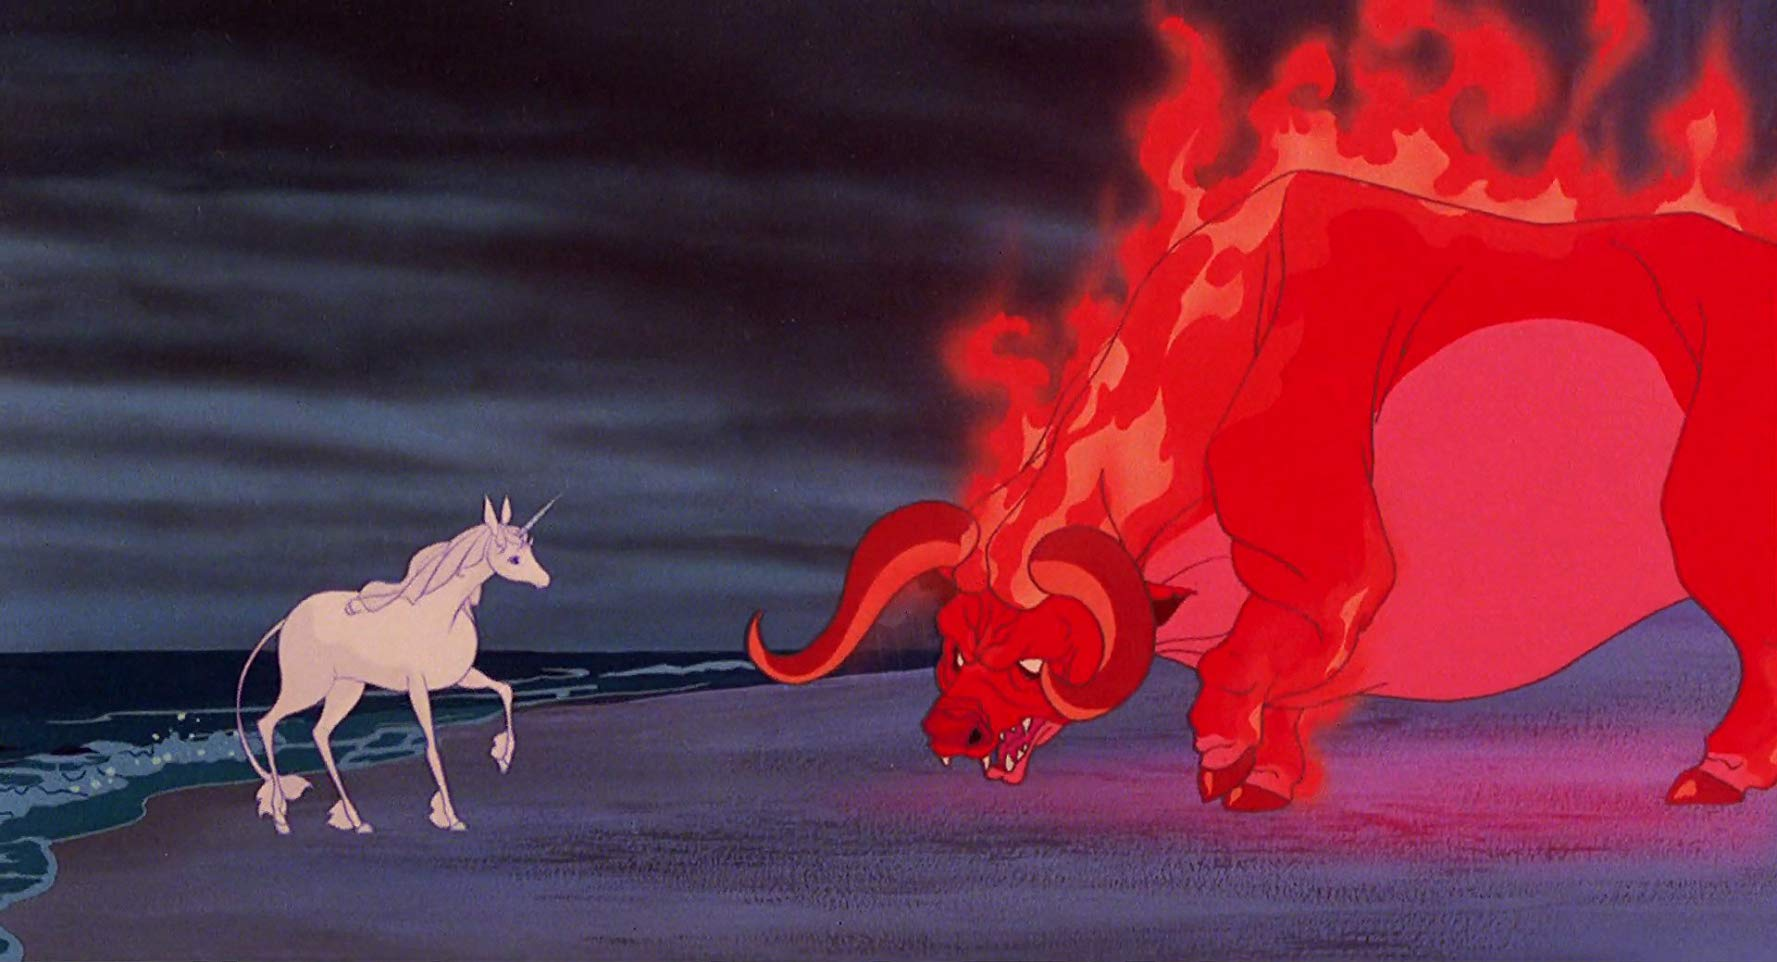 The unicorn faces the Red Bull in The Last Unicorn (1982)